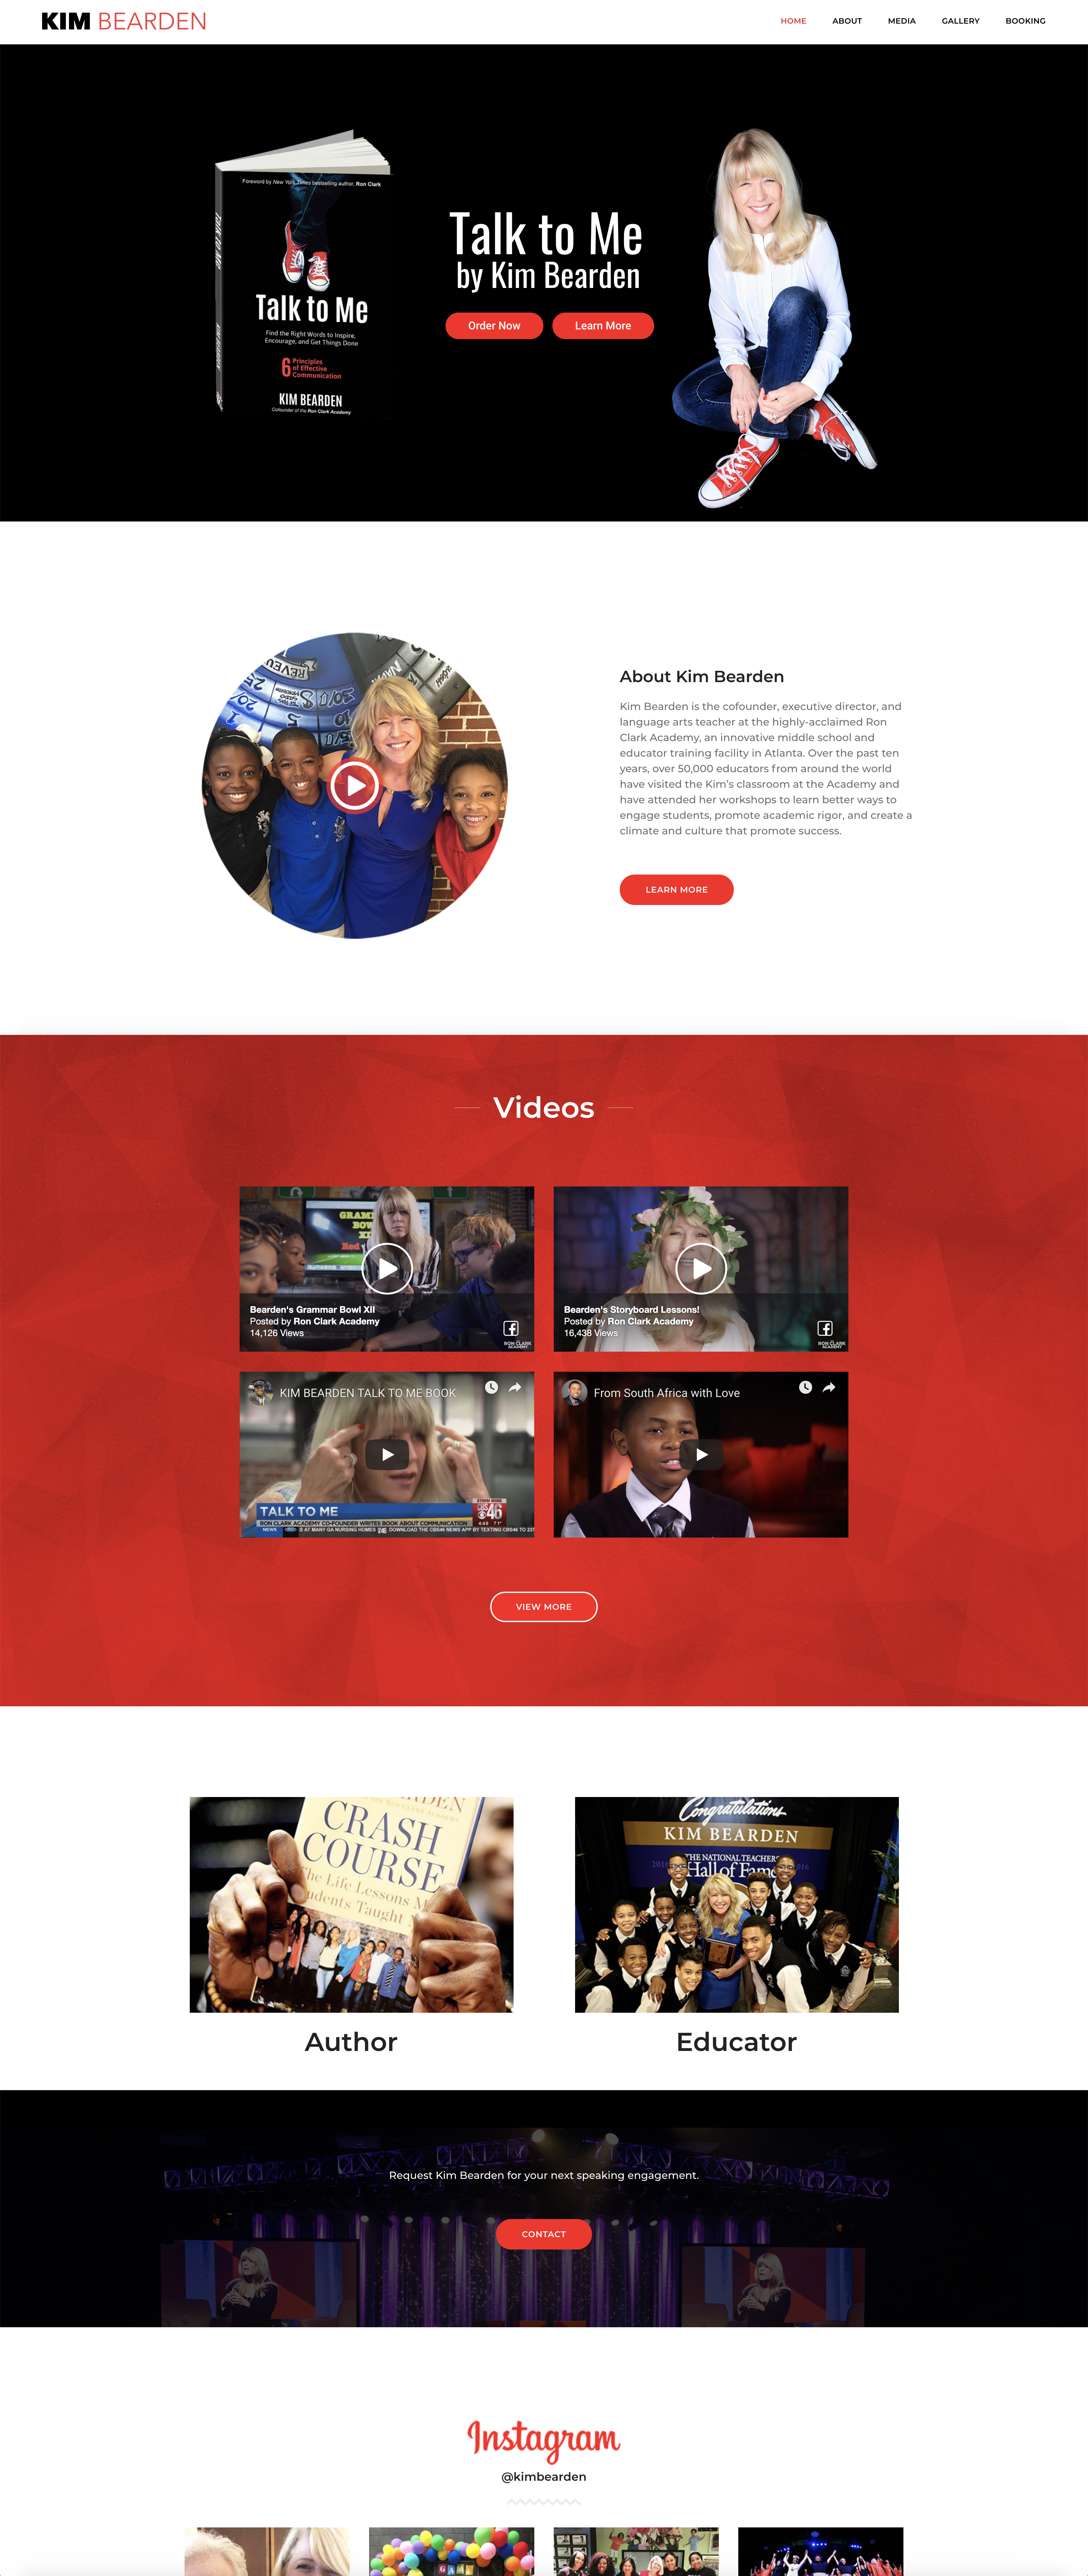 Web Design Layout Kim Bearden